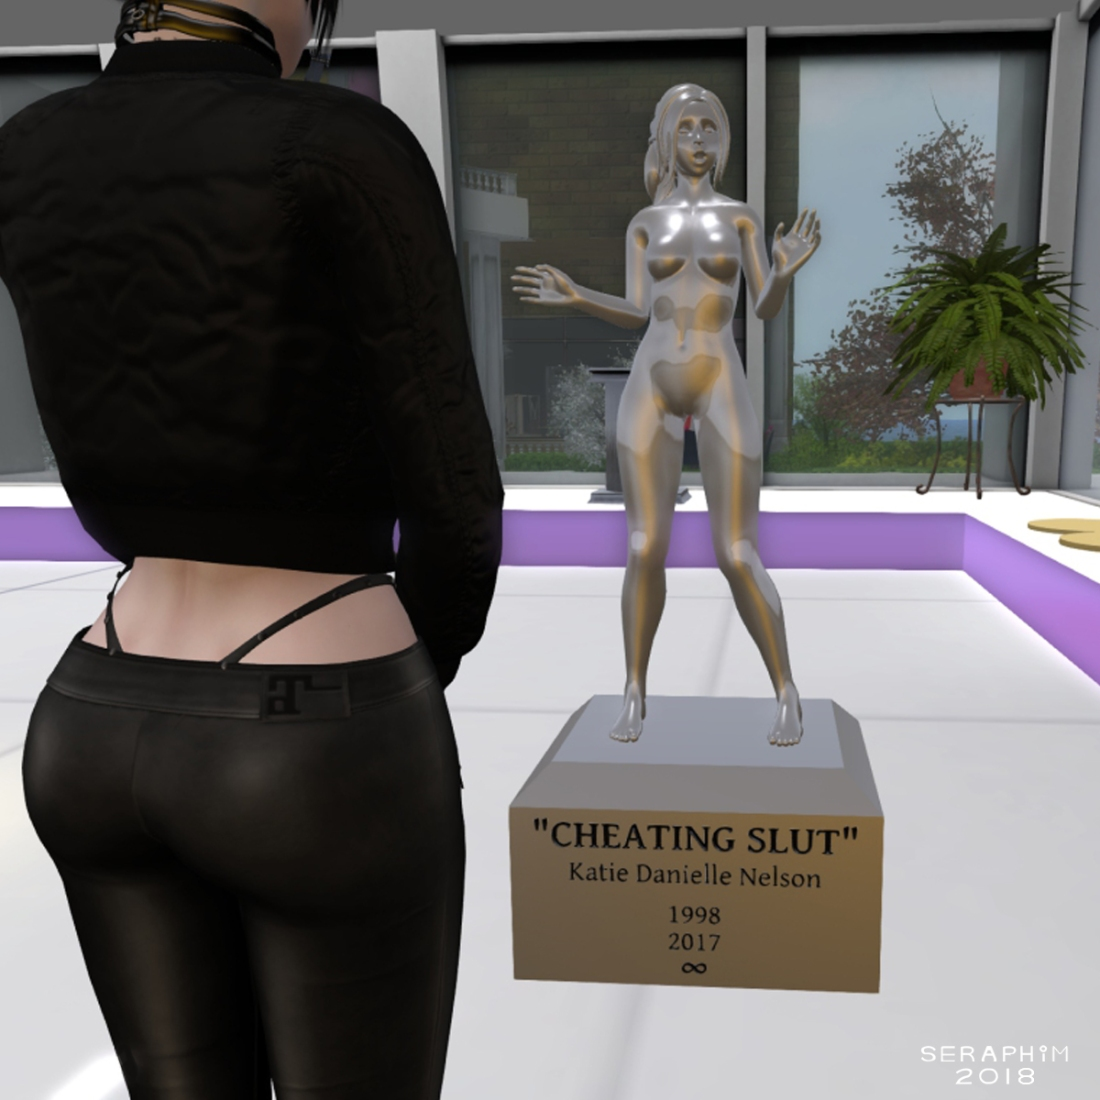 CheatingSlut